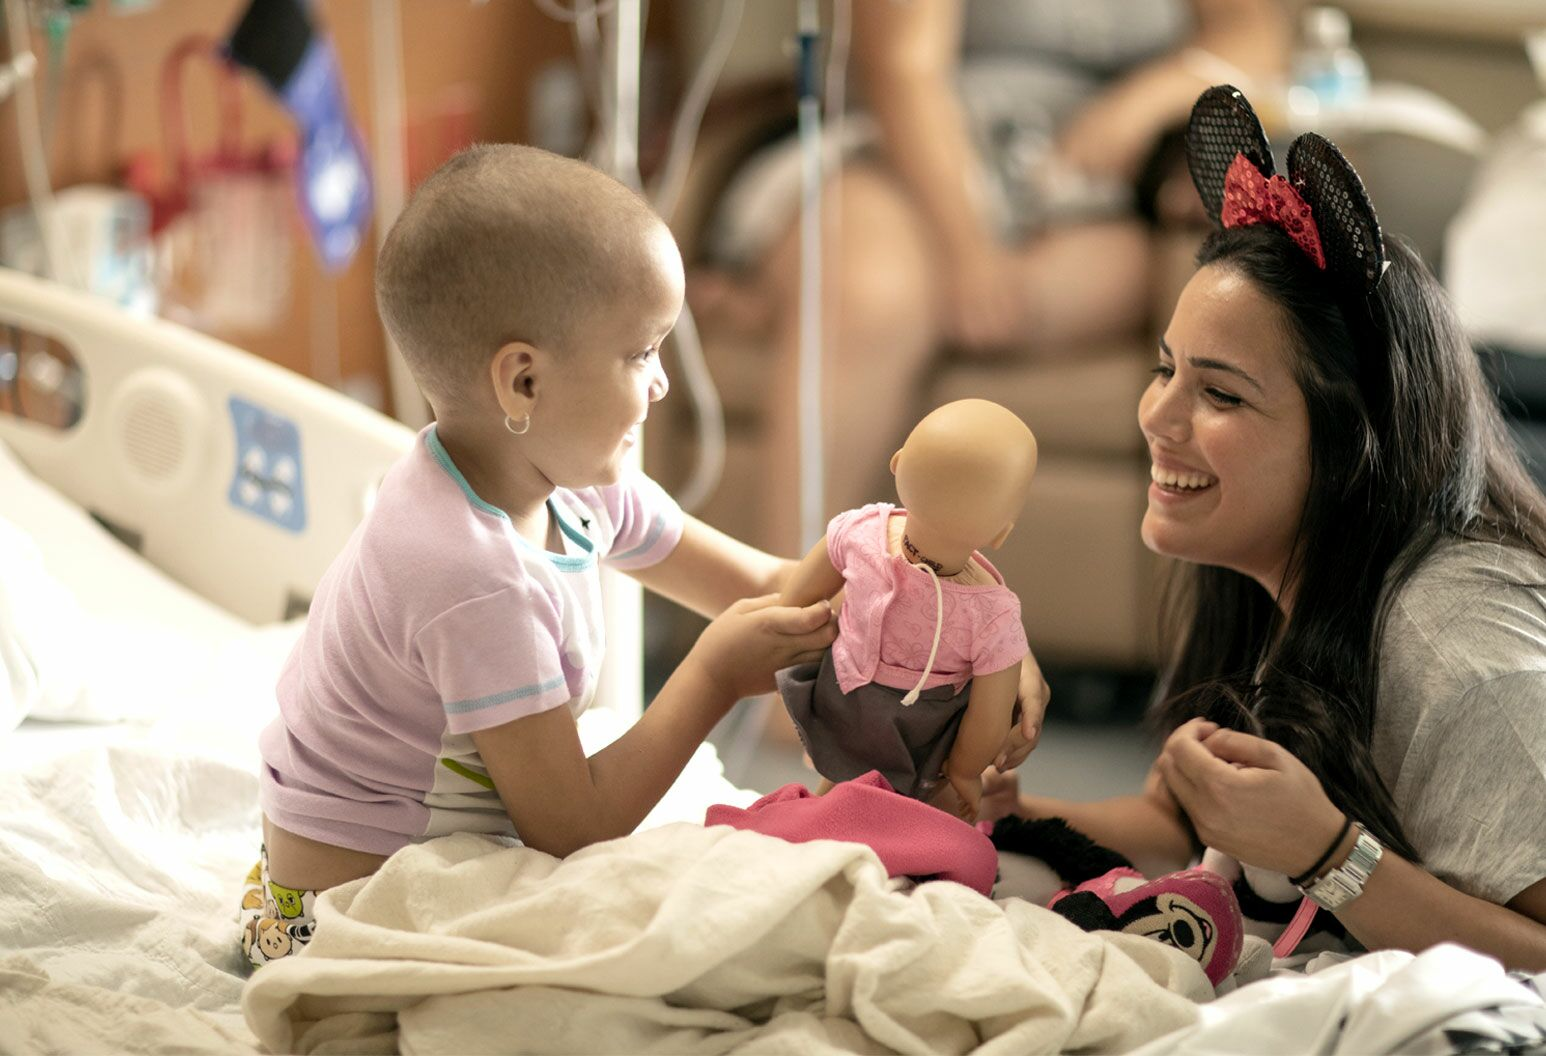 A young girl sitting up in a hospital bed holding a baby doll. A young woman kneeling at the edge of the bed is smiling.